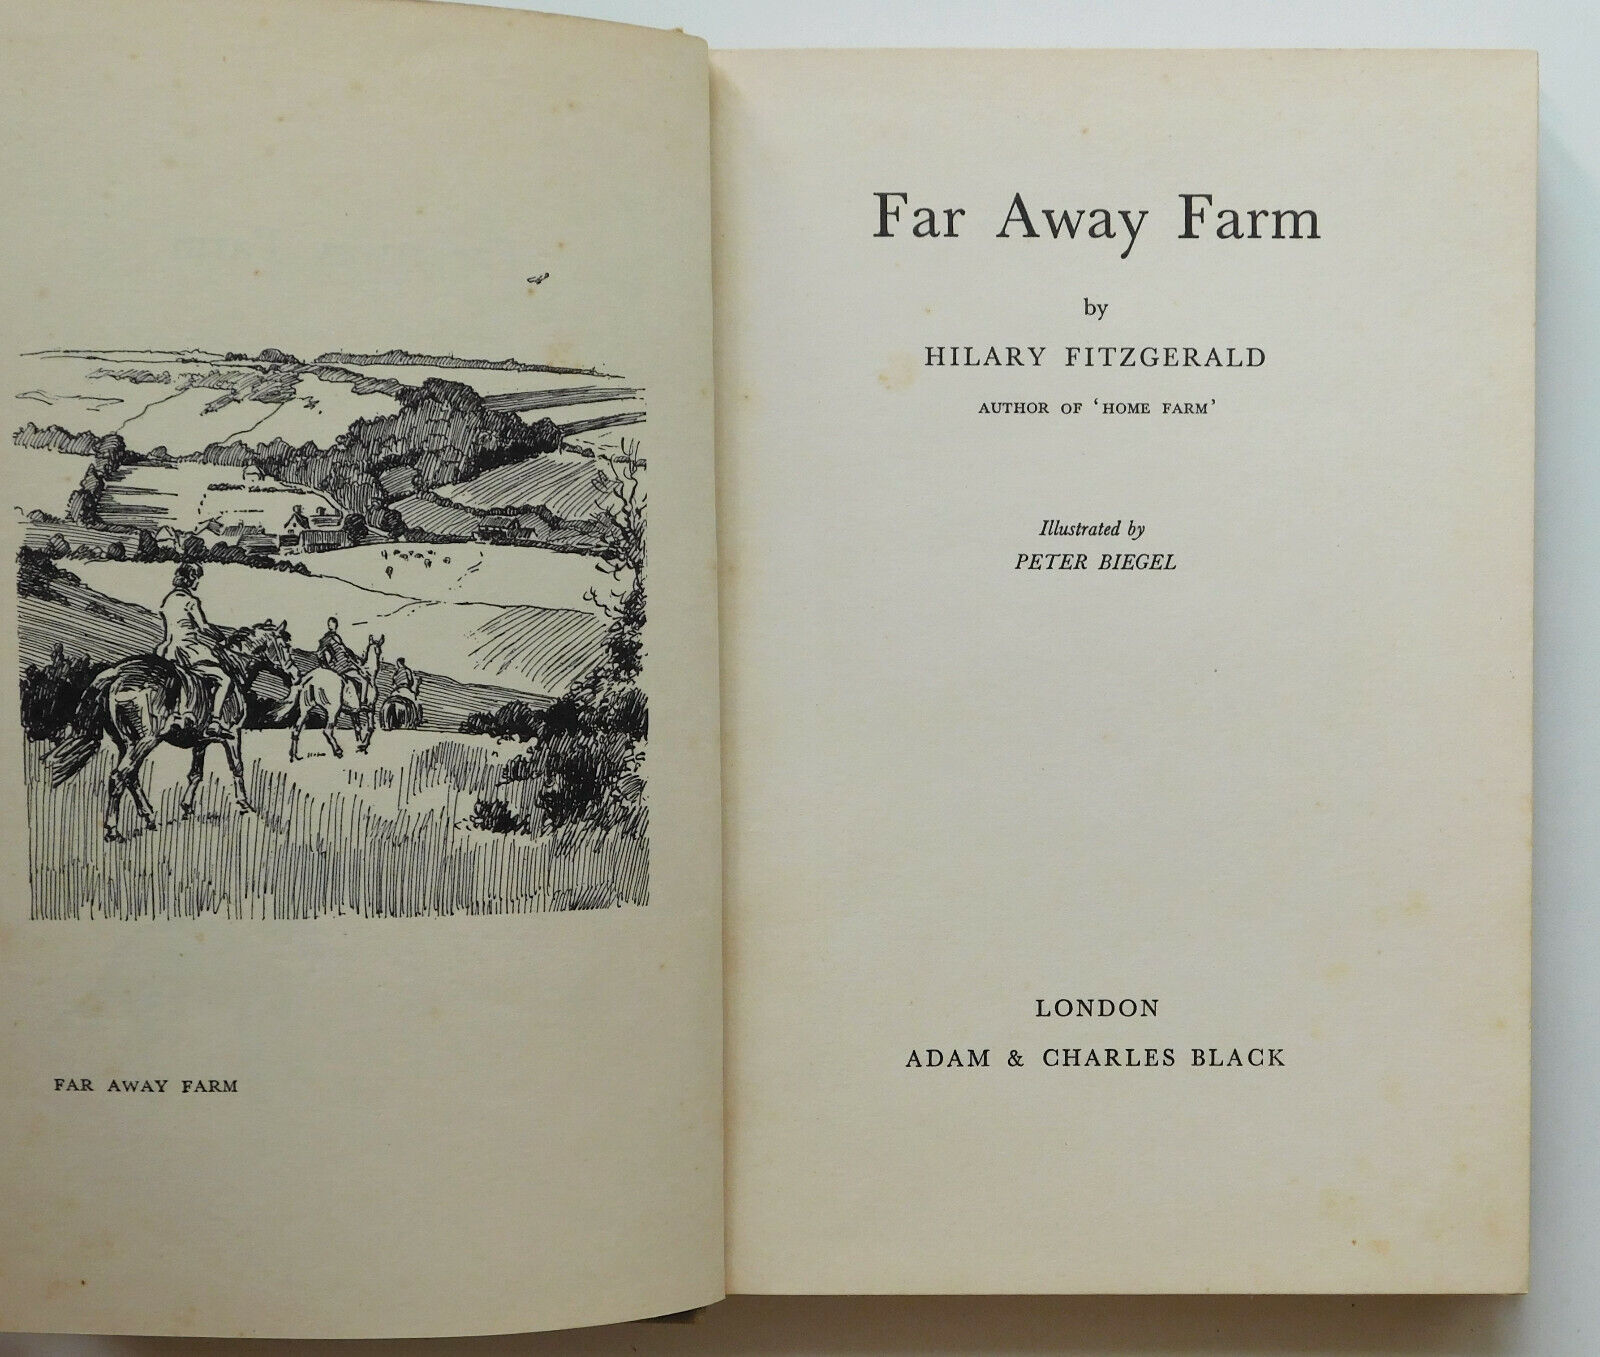 Far Away Farm pony book 1950s by Hilary Fitzgerald childrens horse story Biegel